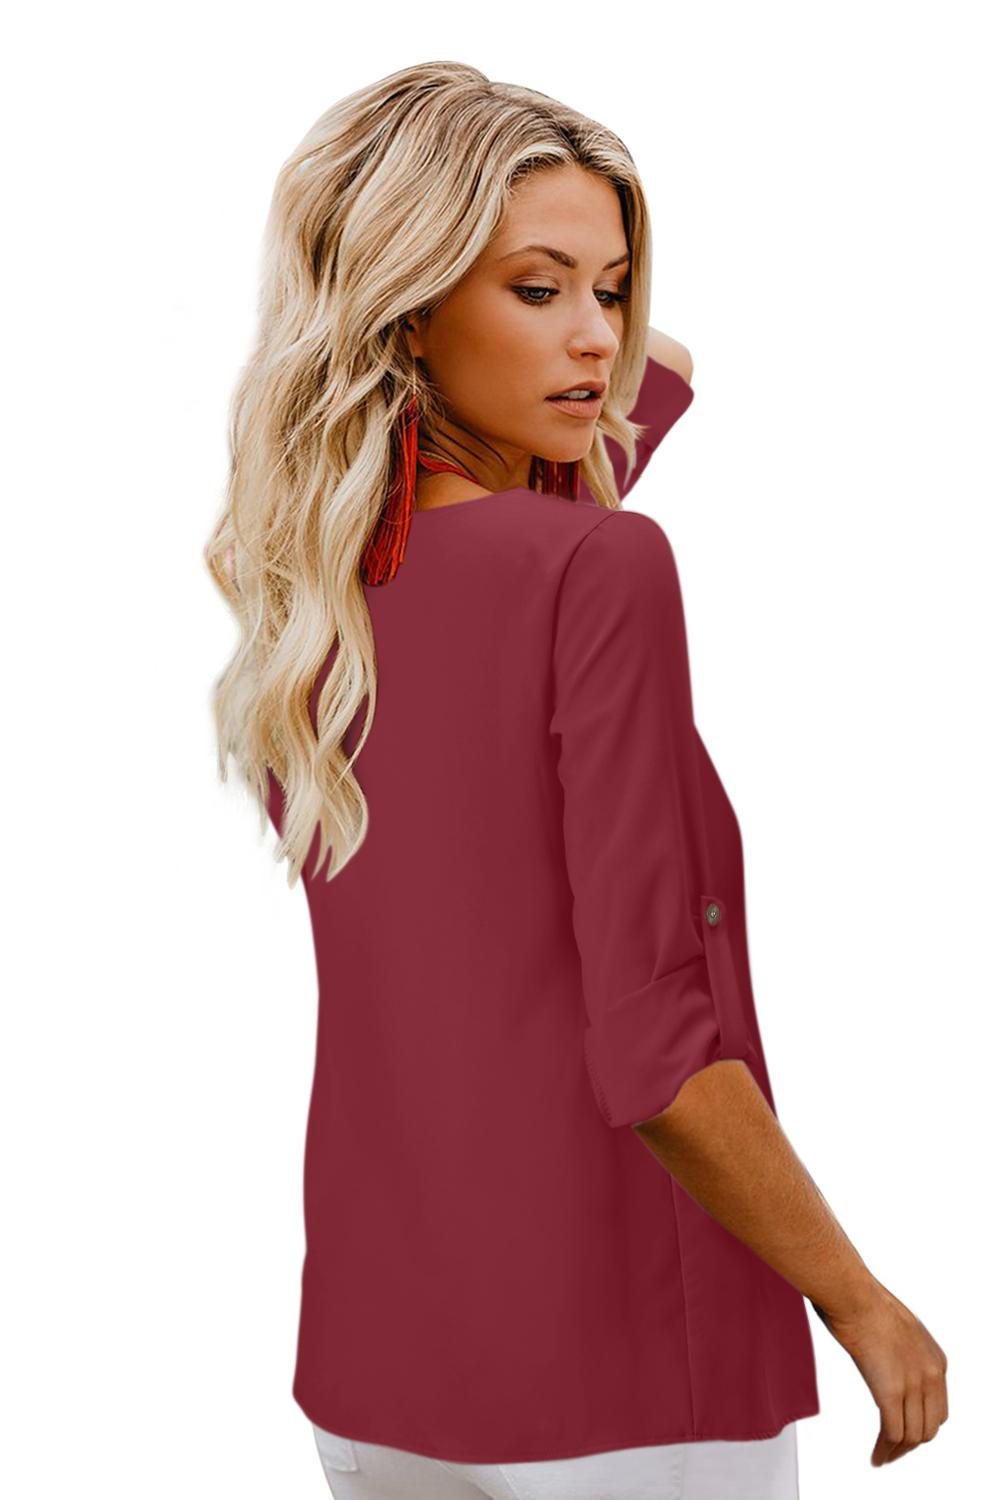 Red Button Detail Roll up Sleeve Blouse Blouses & Shirts Discount Designer Fashion Clothes Shoes Bags Women Men Kids Children Black Owned Business